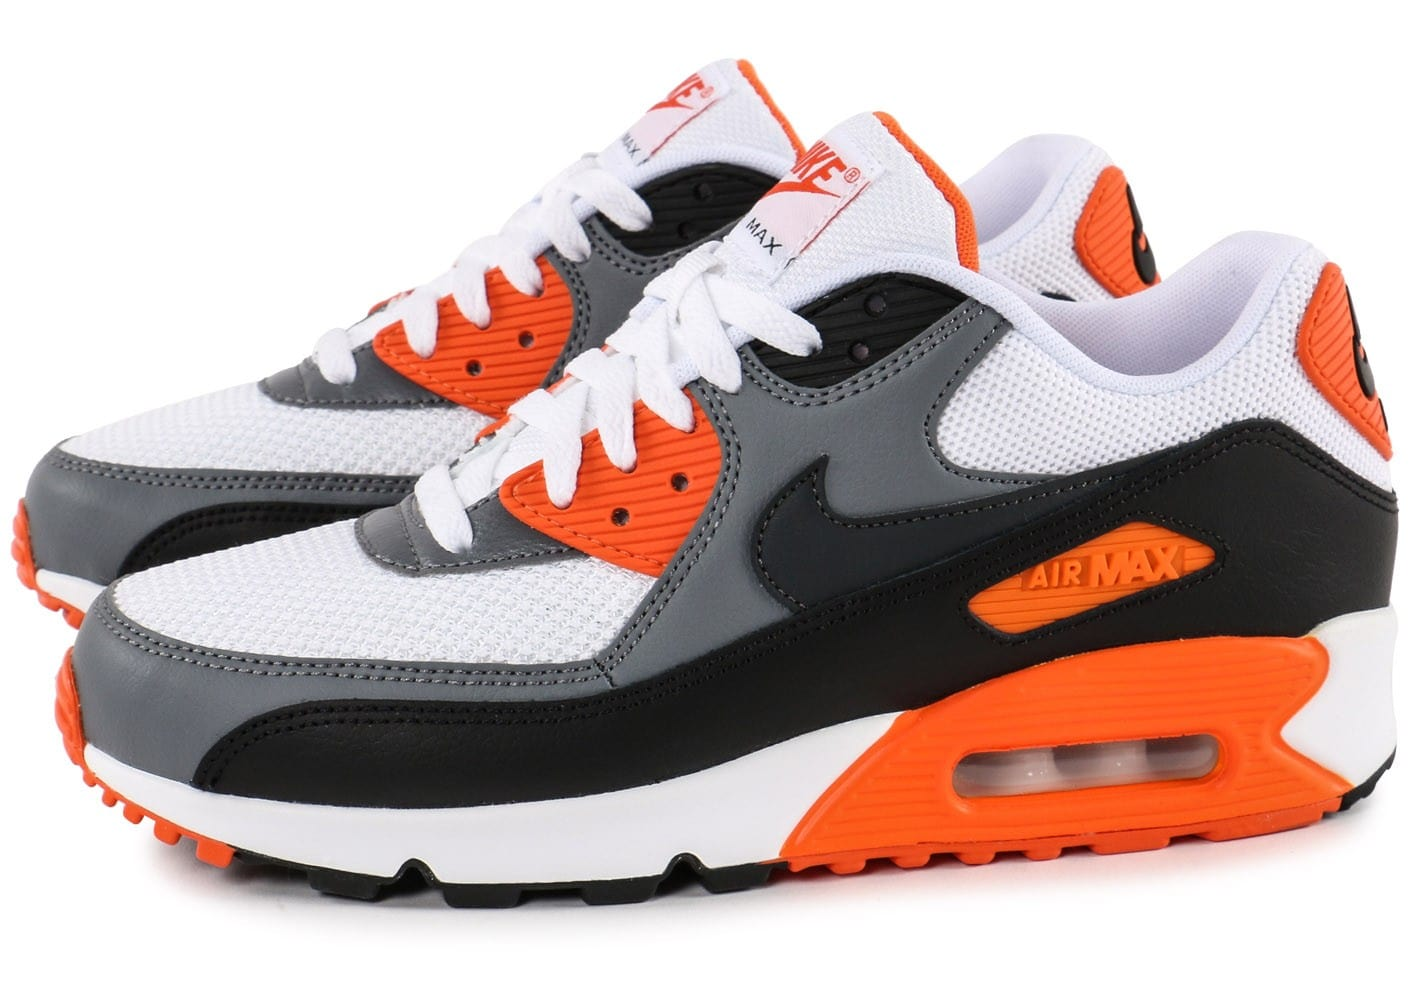 meilleures baskets 91faa 732a0 Nike Air Max 90 Essential blanc orange - Chaussures Baskets ...